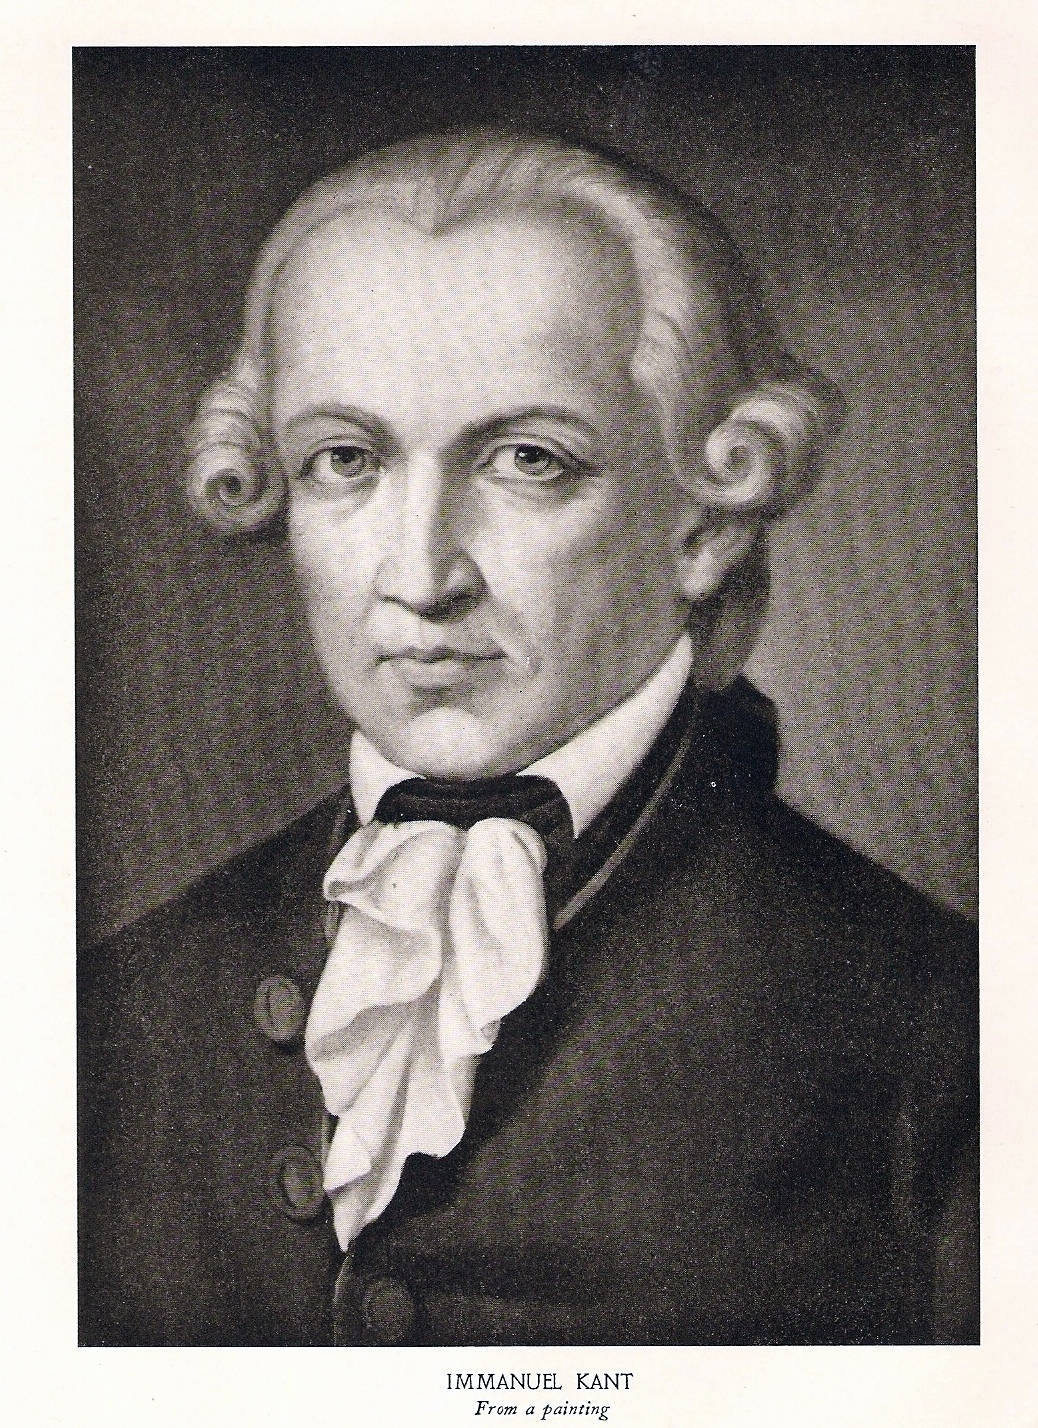 immanuel kant essay on enlightenment Immanuel kant: what is enlightenment the german philosopher immanuel kant (1724-1804) is a giant in the history of modern philosophy in an essay entitled what is enlightenment (1784), he contended that the enlightenment marked a new way of thinking and.